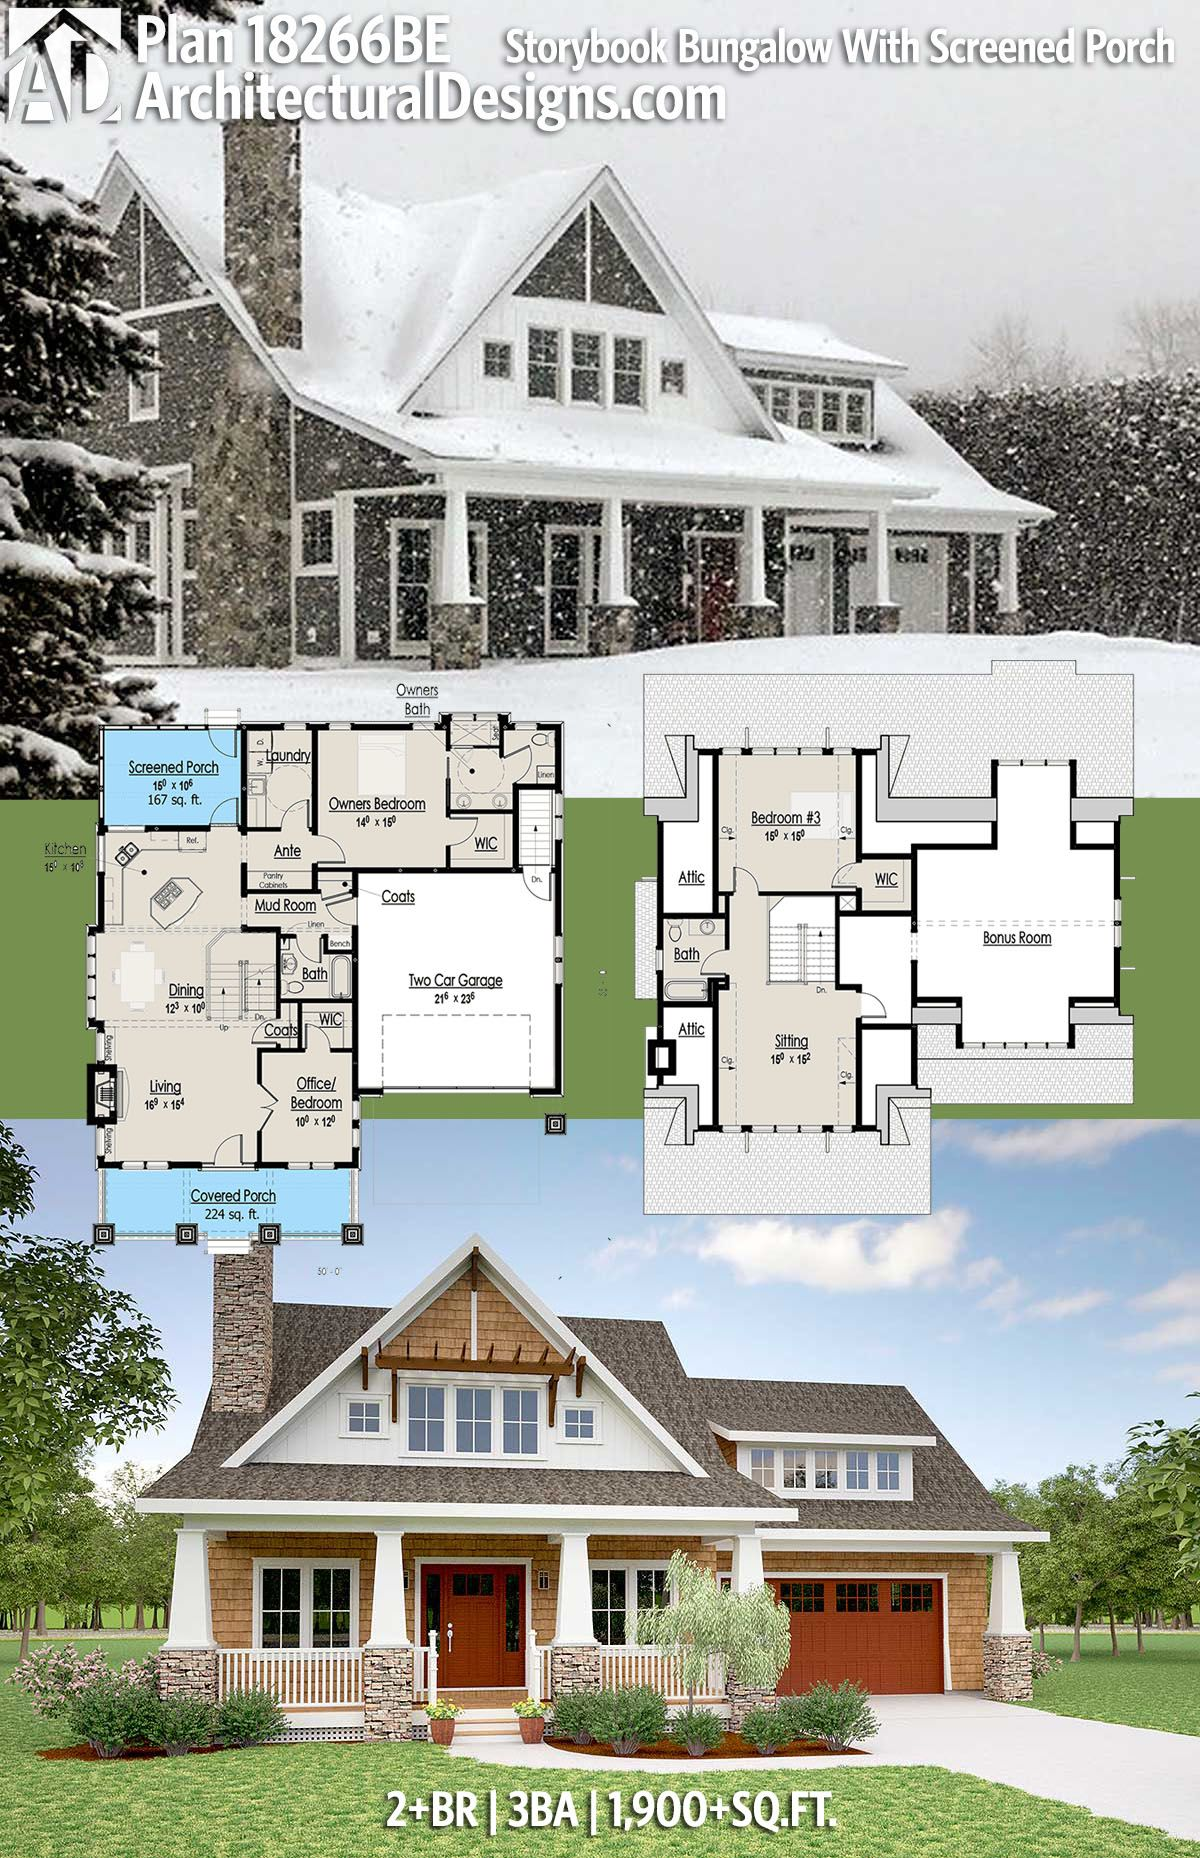 Architectural Designs House Plan 18266BE Comes To